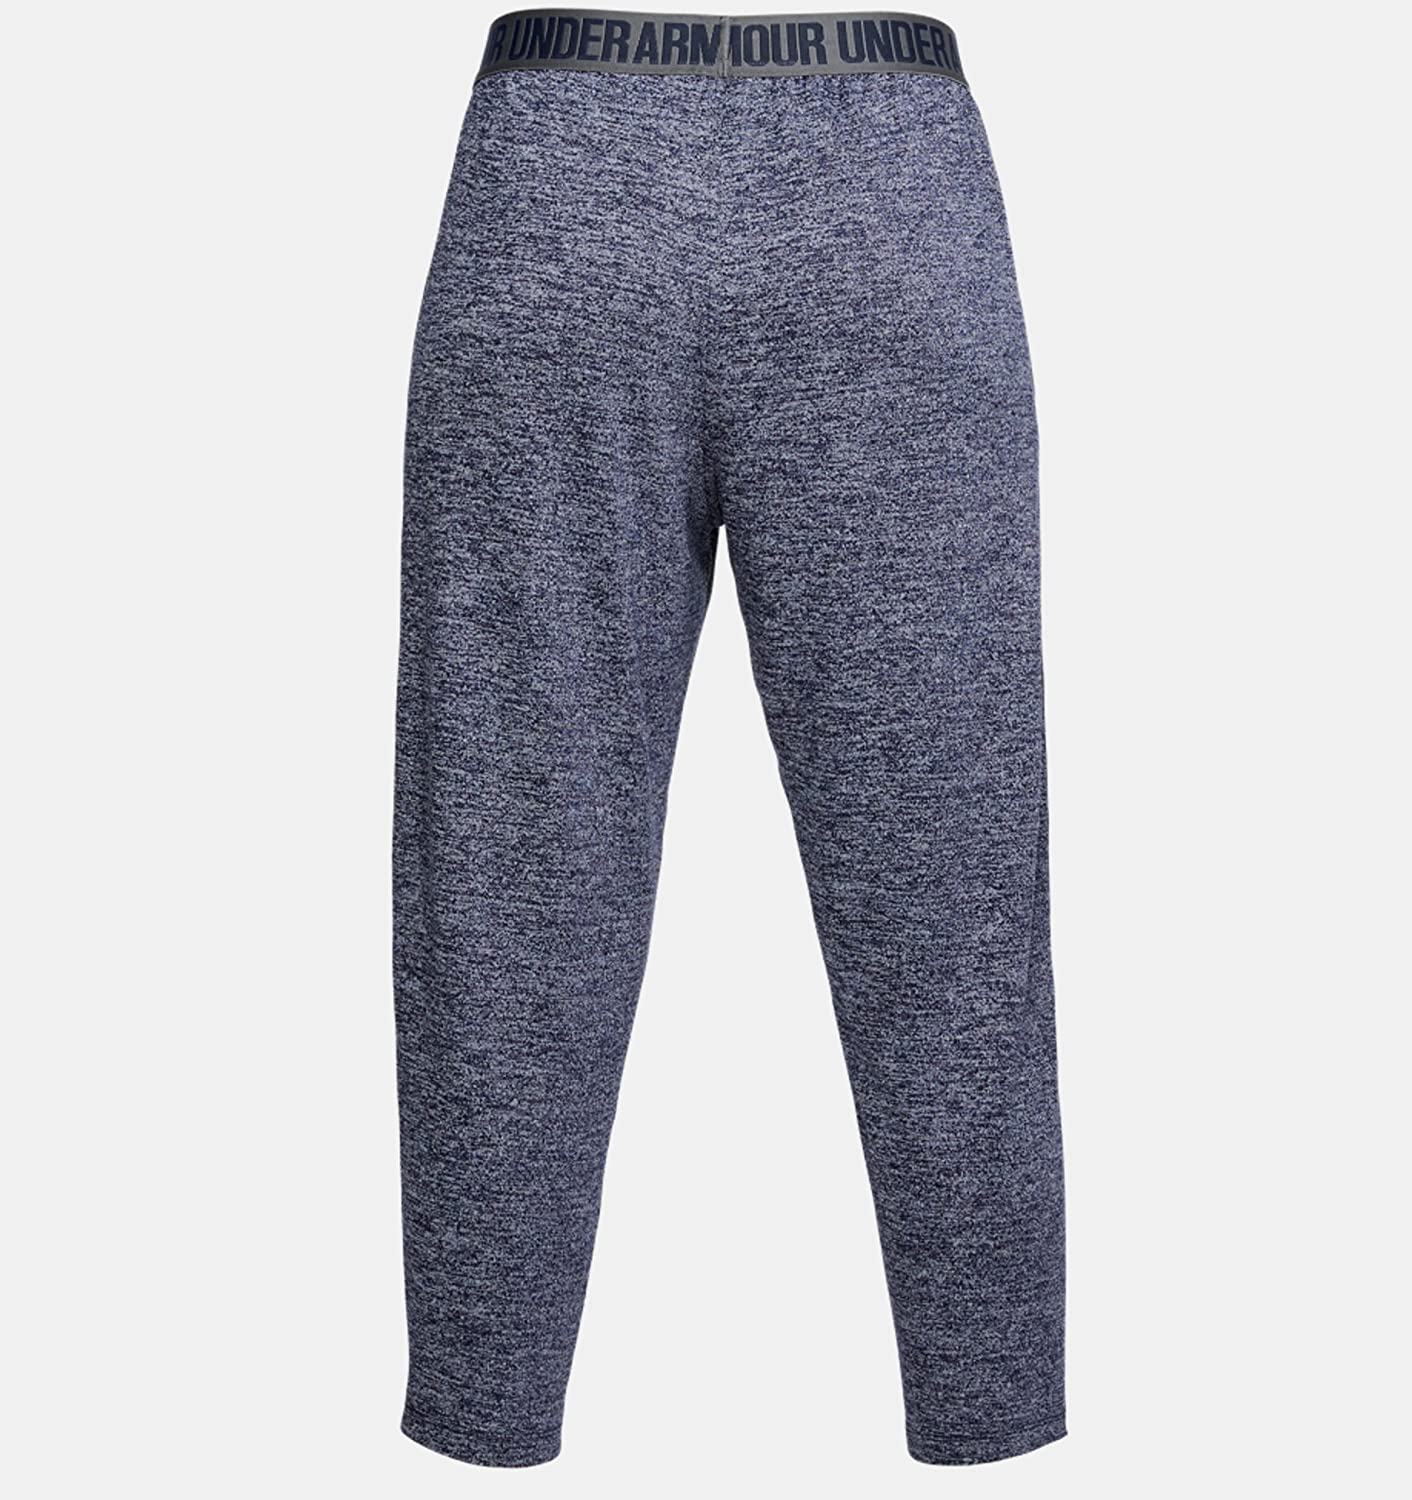 Under Armour Play Up Capri-Twist Leggings, Mujer: Amazon.es: Deportes y aire libre